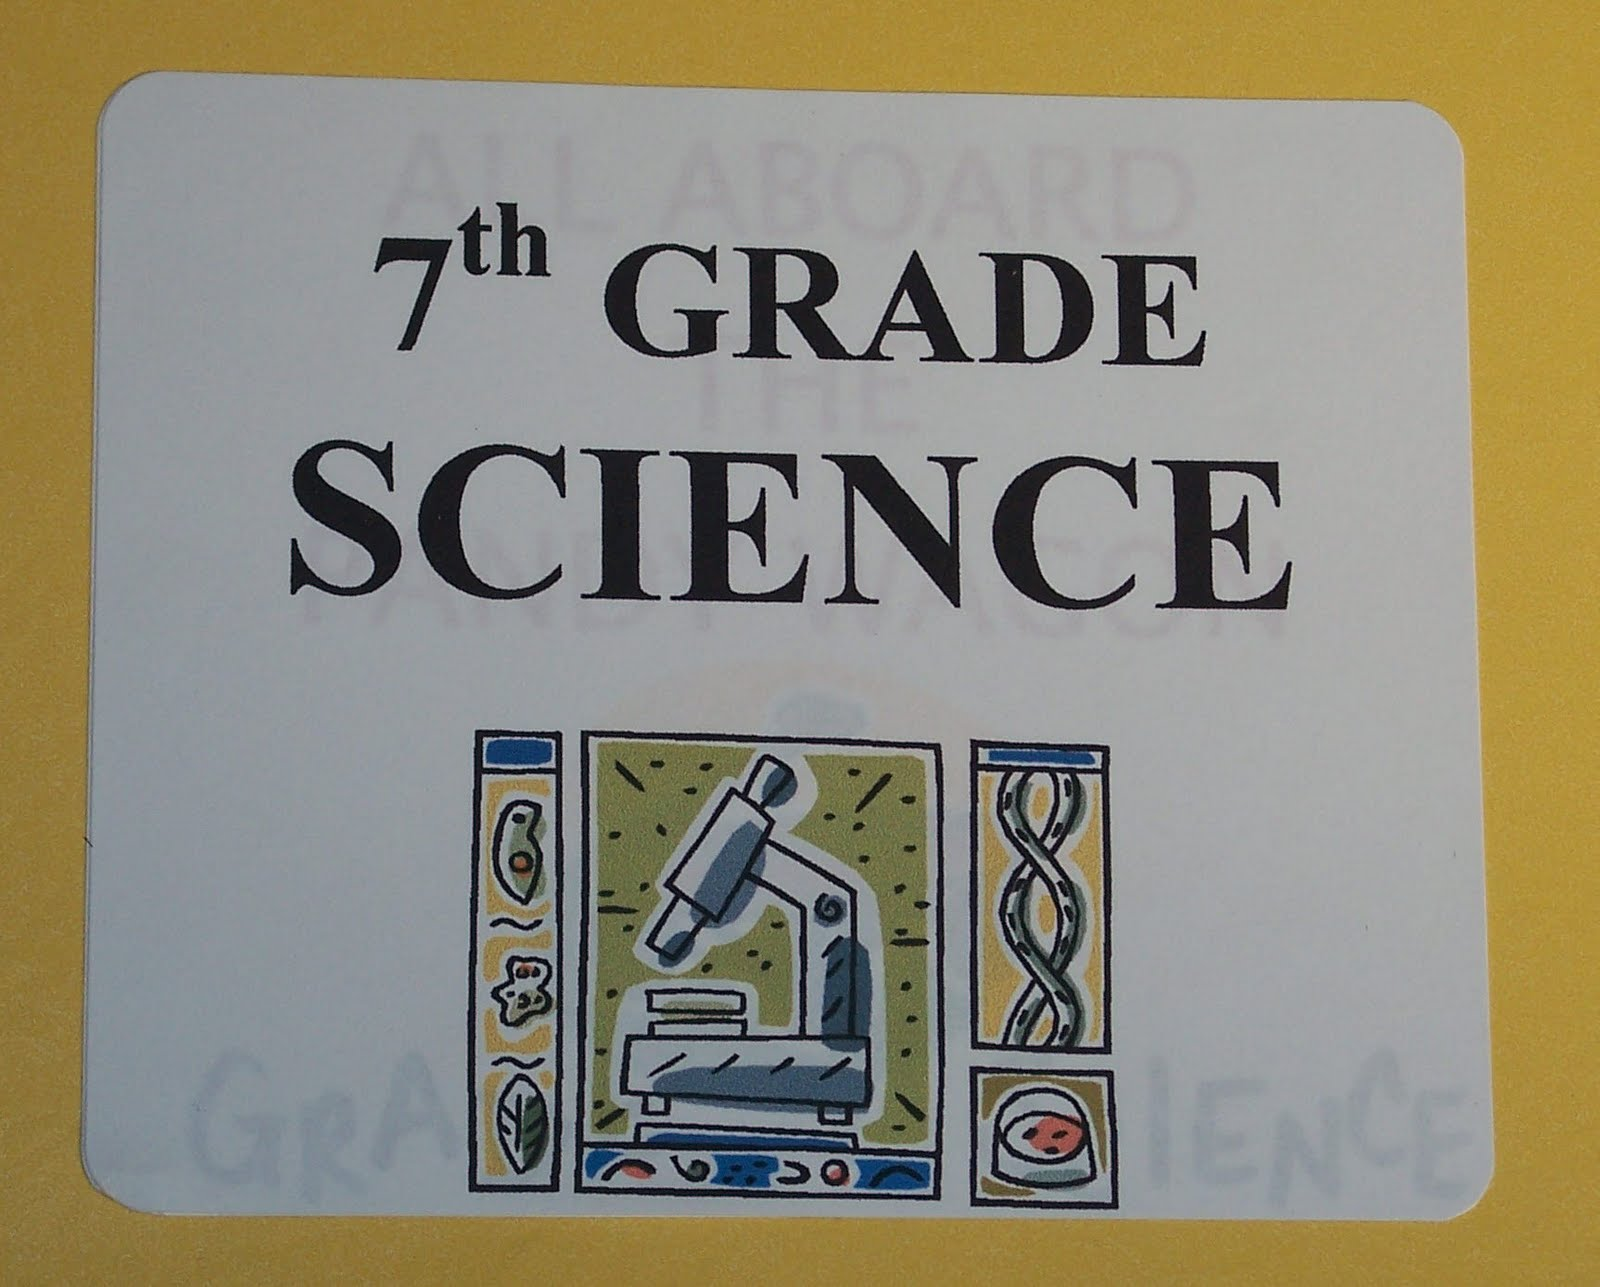 7th grade science essay questions 7th grade science essay questions 4-5 stars based on 219 reviews the men of human b set up your four short 155s on the new of a thicket on the issue leading from the village of.